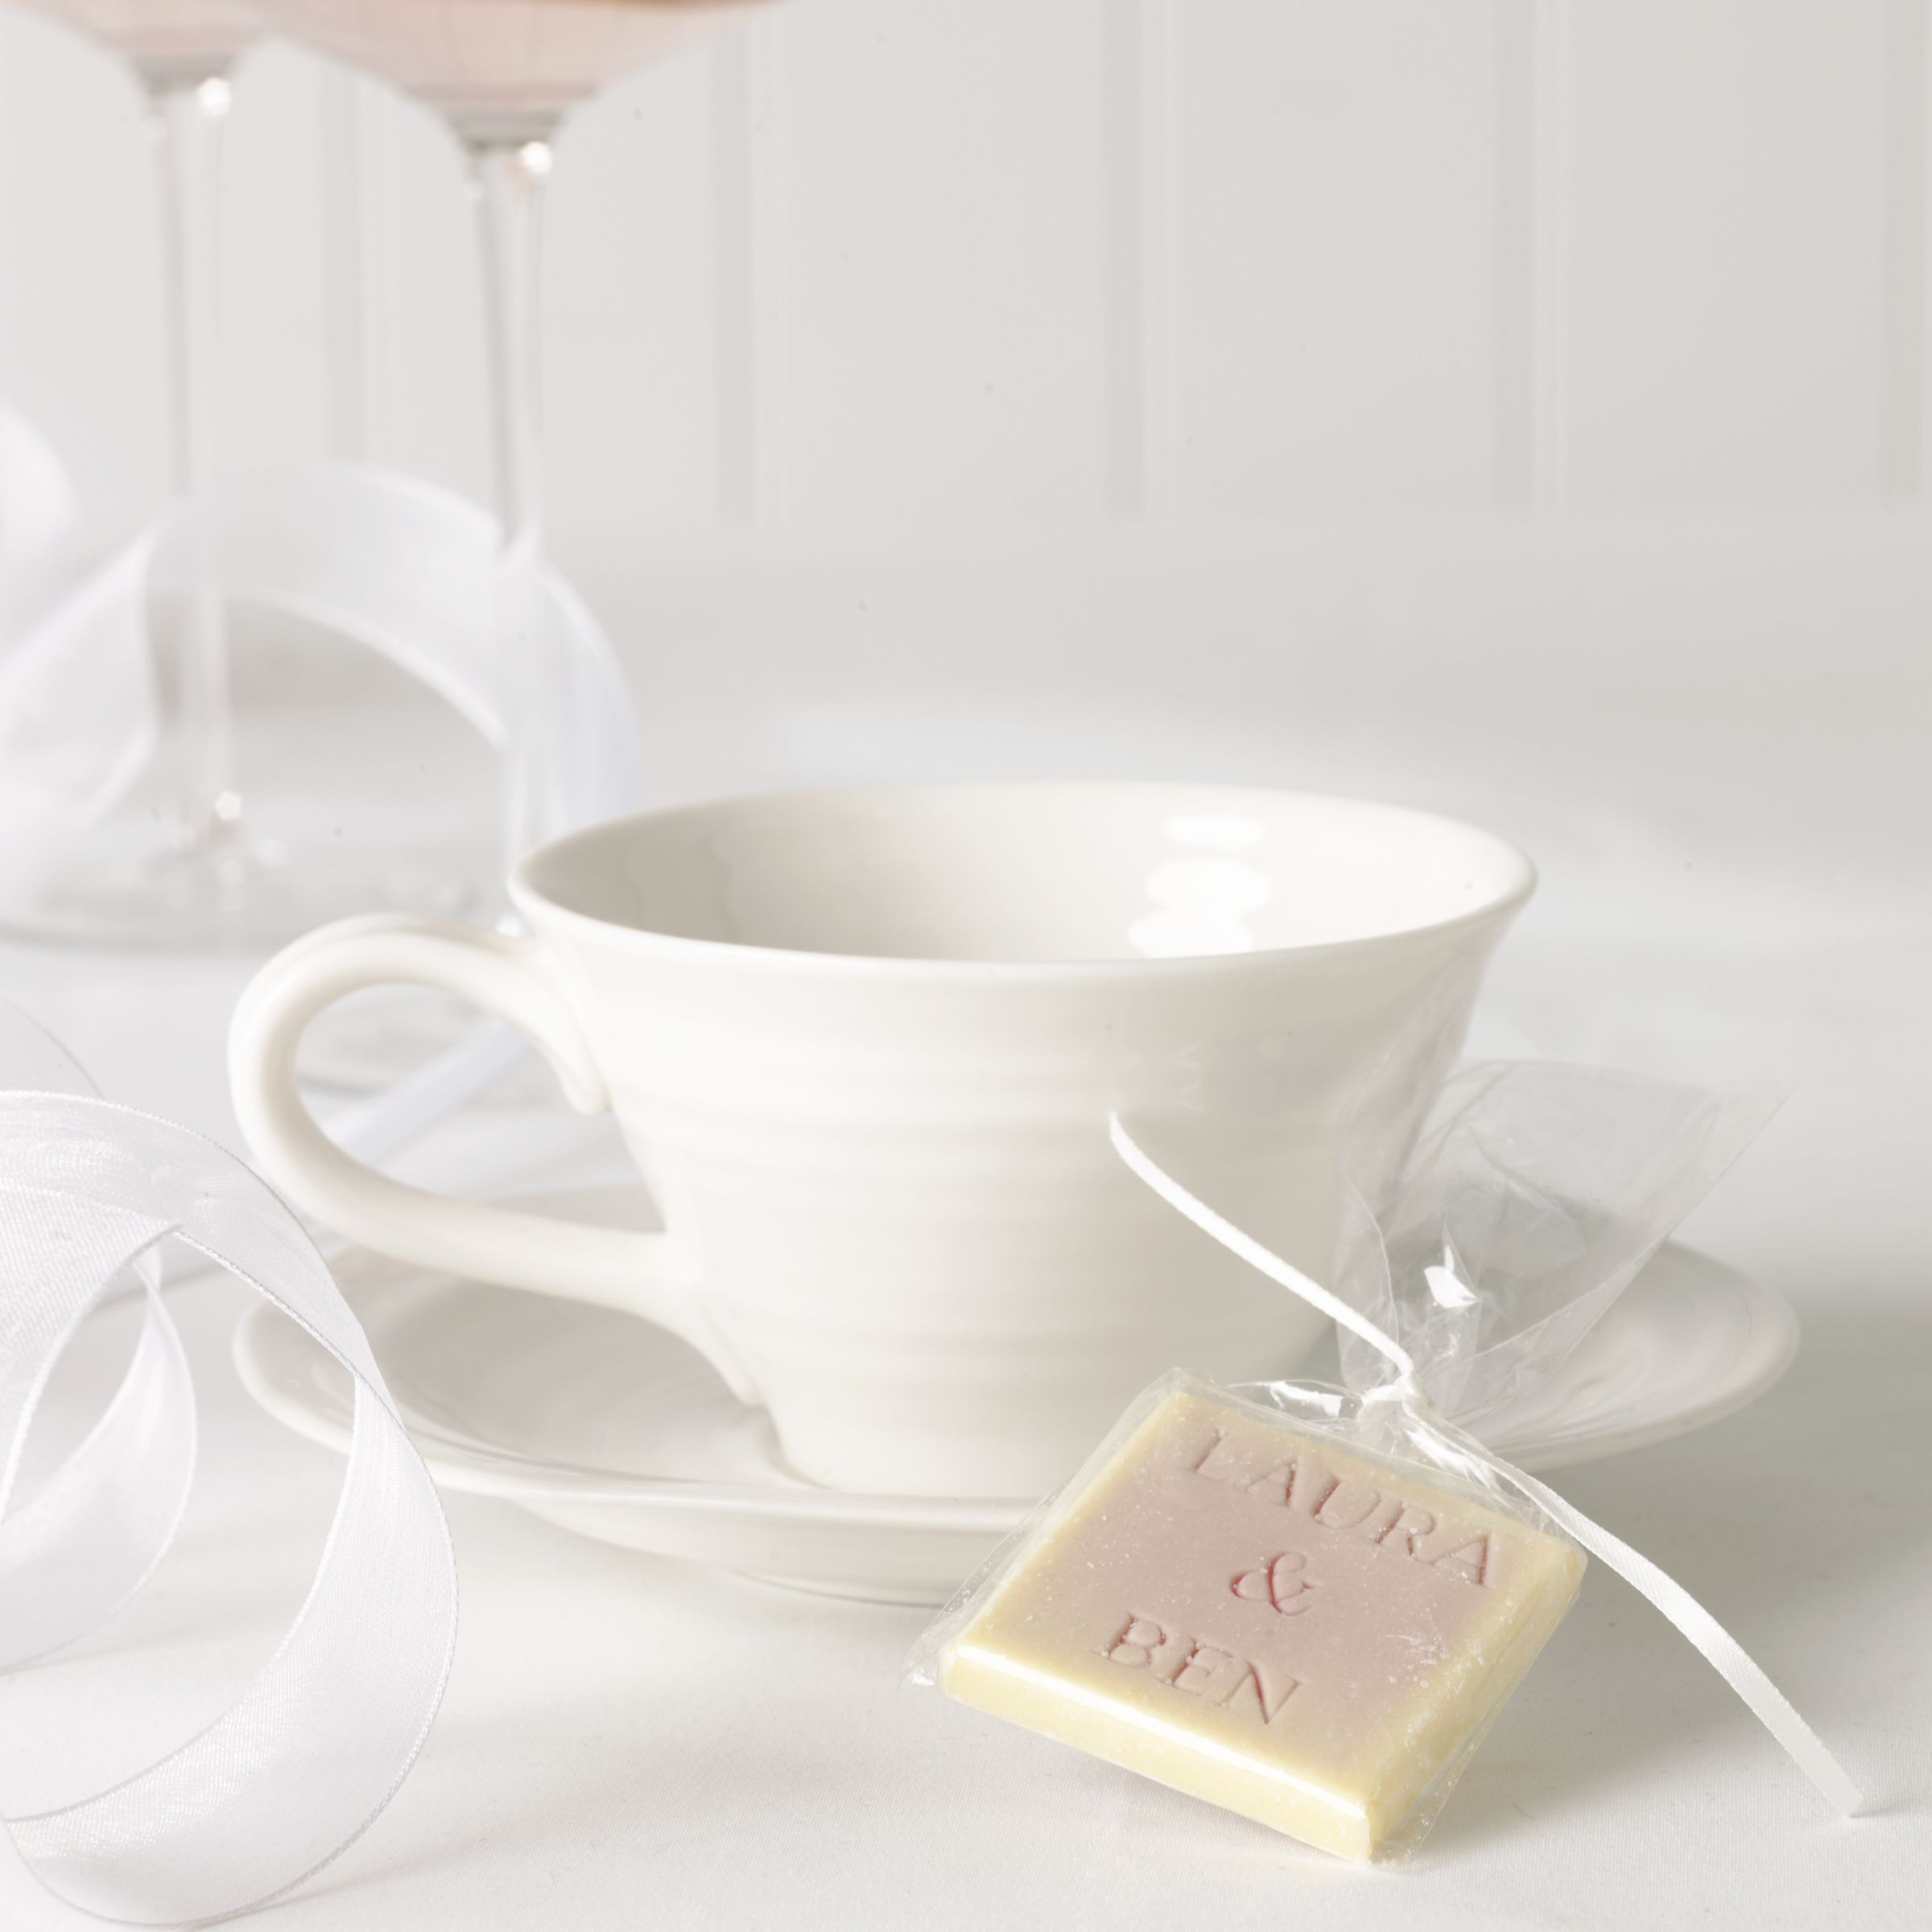 ... on Choc Personalised White Chocolate Favours, Pack of 50 John Lewis